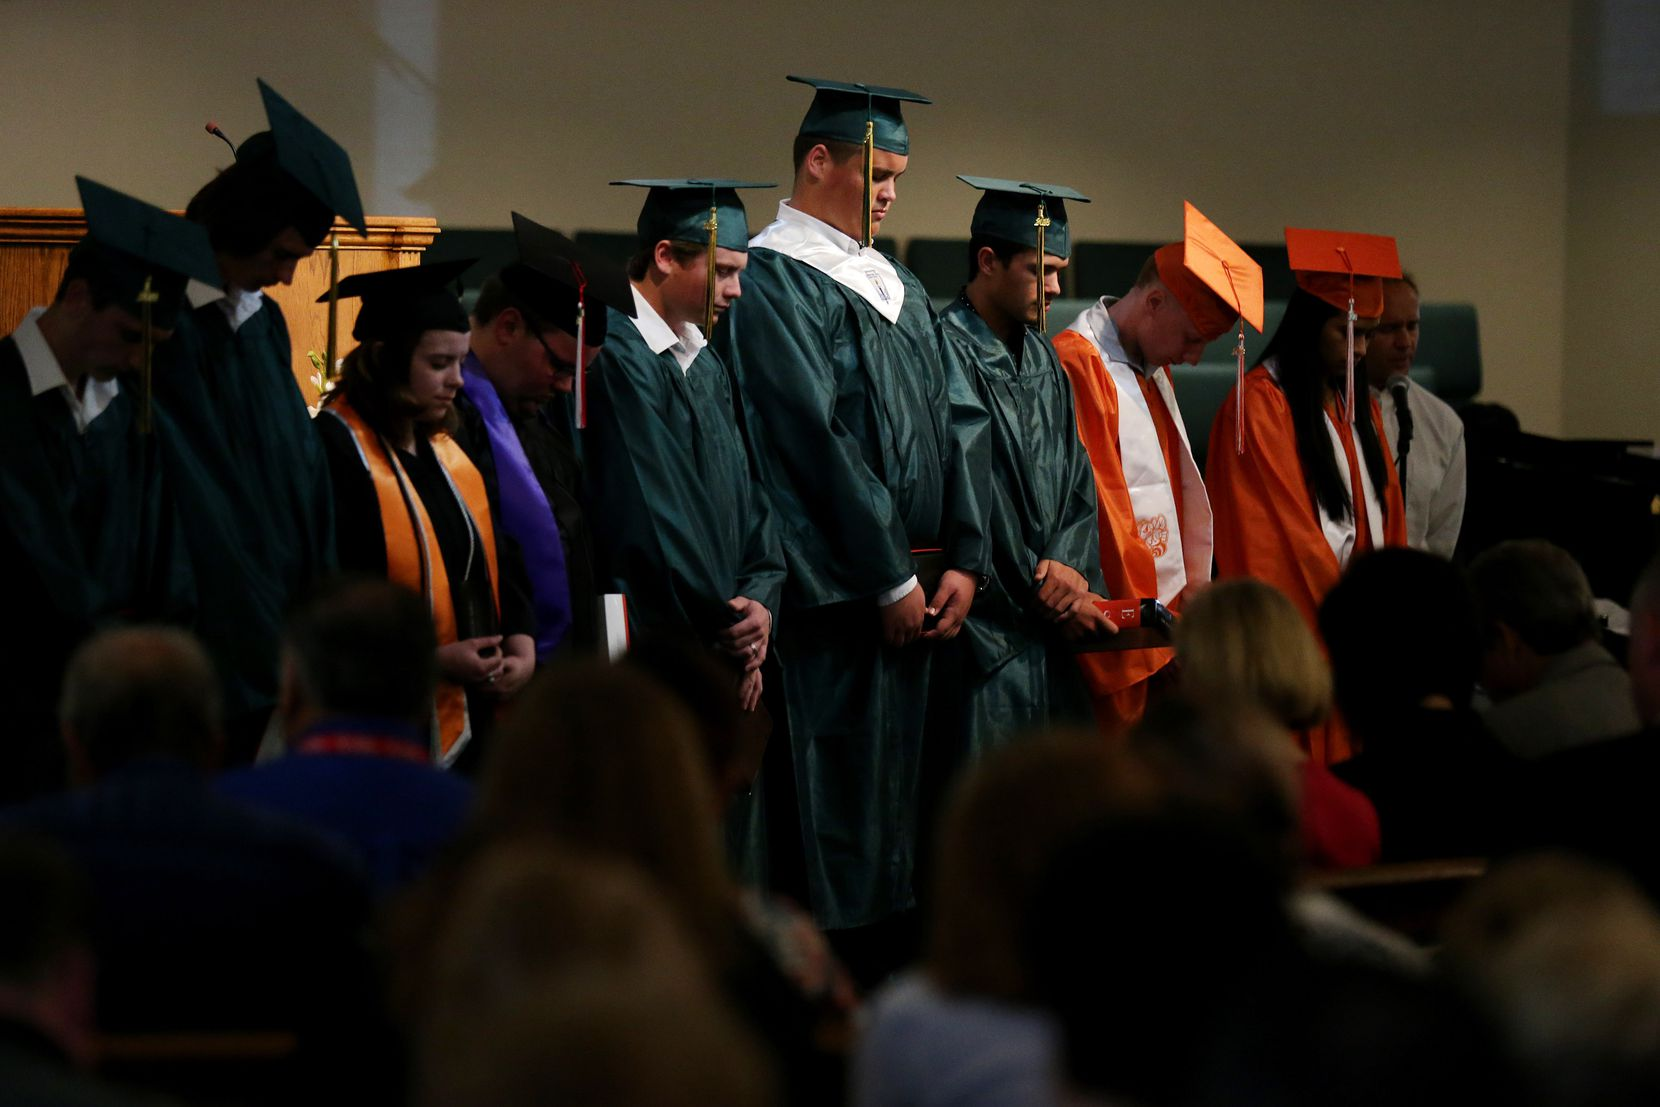 Graduating high school seniors are recognized during worship service at Arcadia First Baptist Church in Santa Fe, Texas Sunday May 20, 2018. Gov. Greg Abbott, Lt. Gov. Dan Patrick, and others were in attendance at the service.